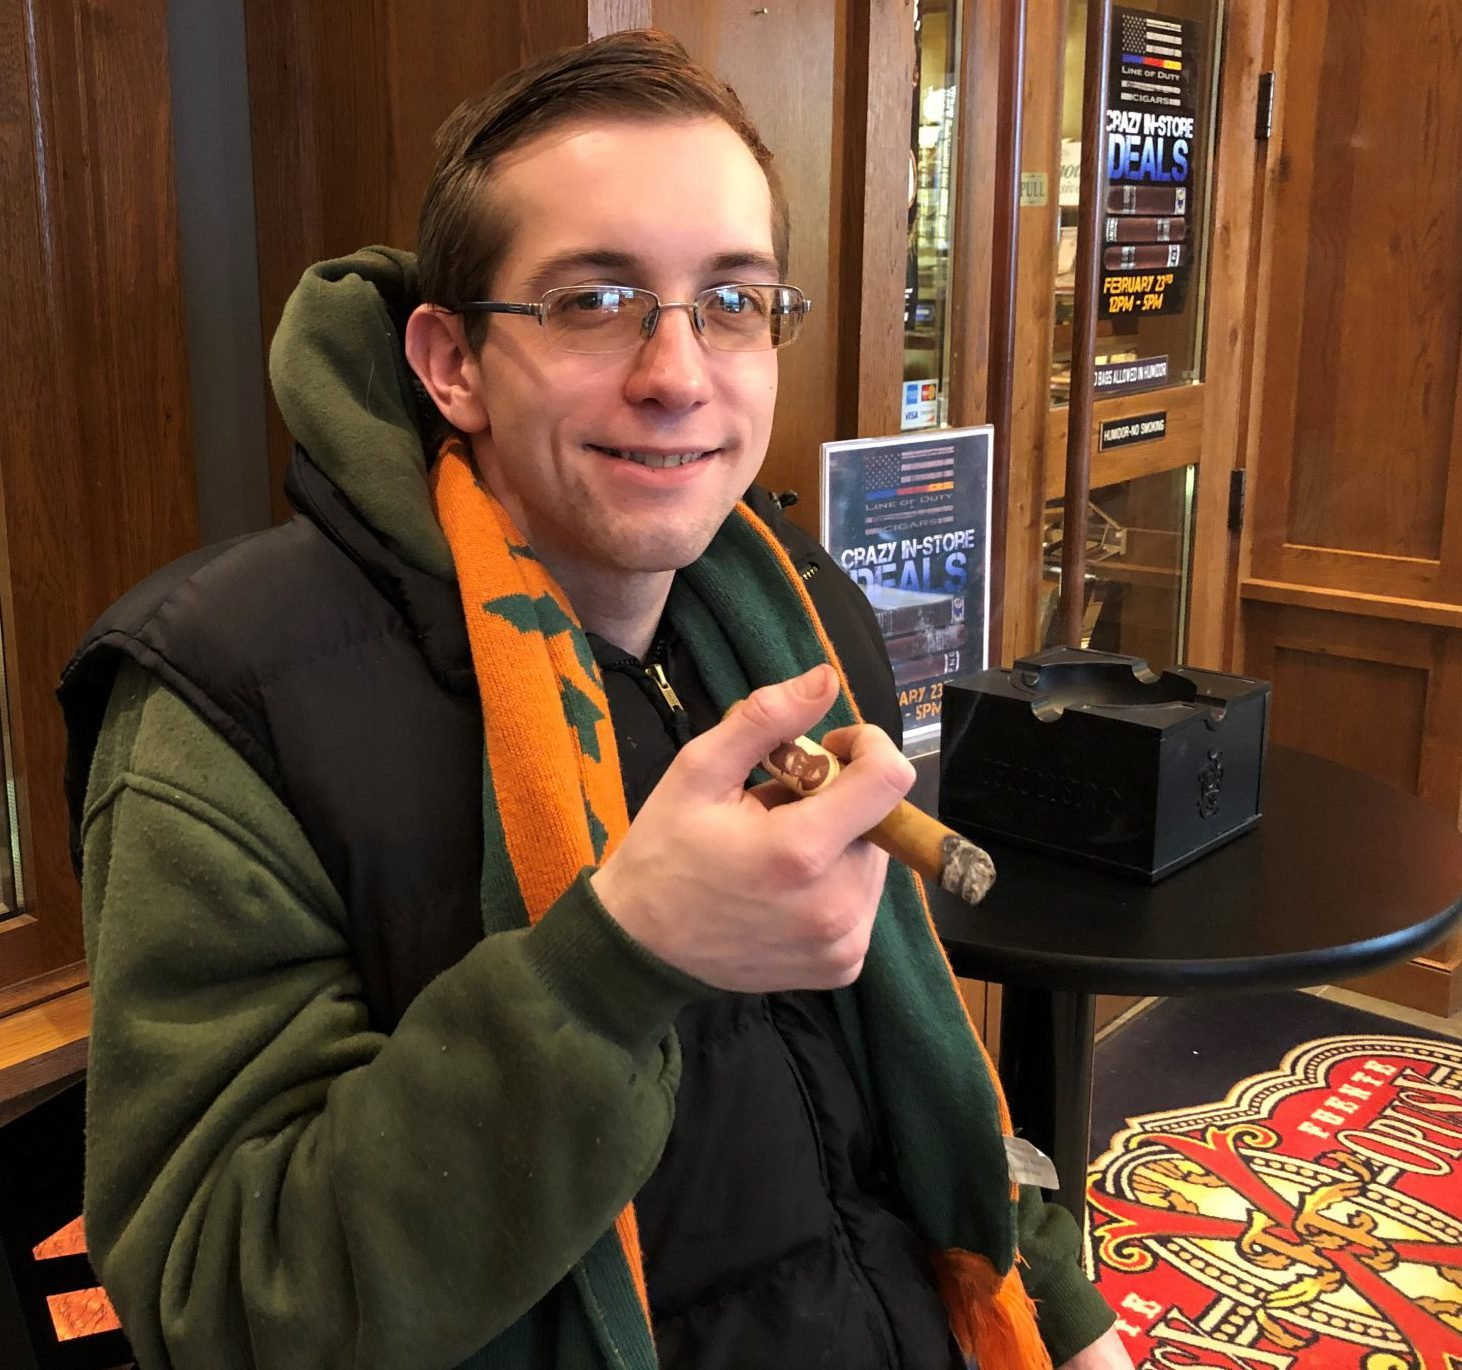 reader's choice top cigars for St. Patrick's Day 2019 Blind Man's Bluff Connecticut cigars Kyle Magda at Famous Smoke Shop